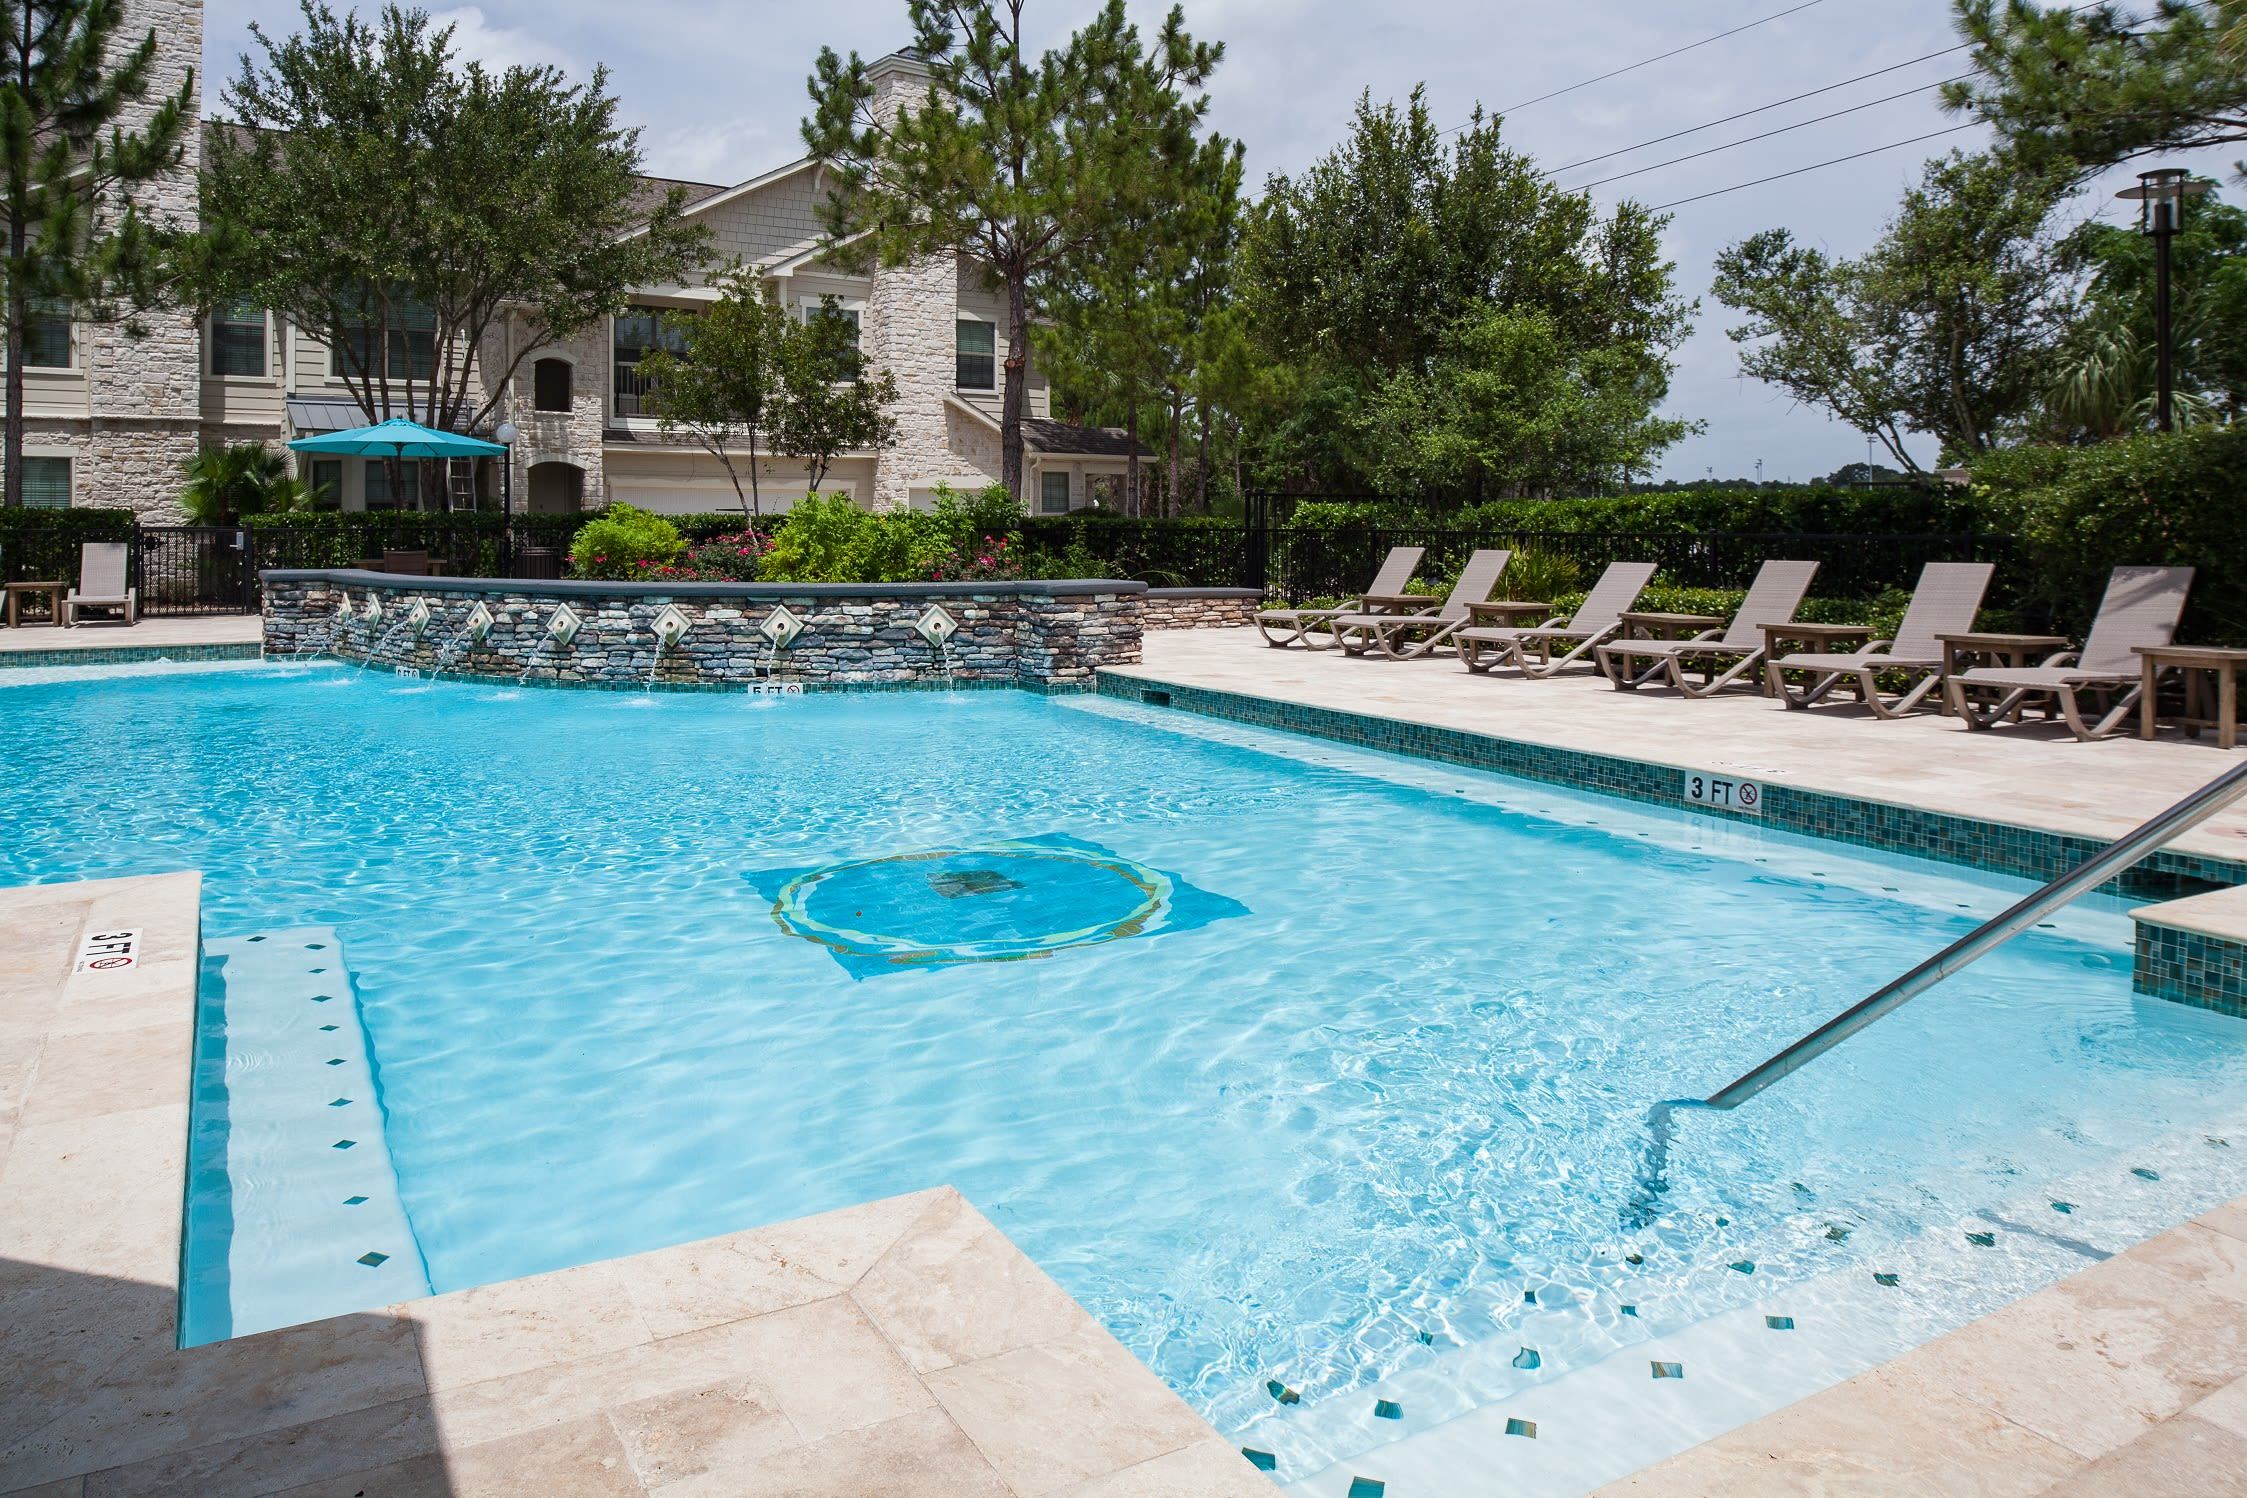 Plenty of pool seating at Lakefront Villas in Houston, Texas